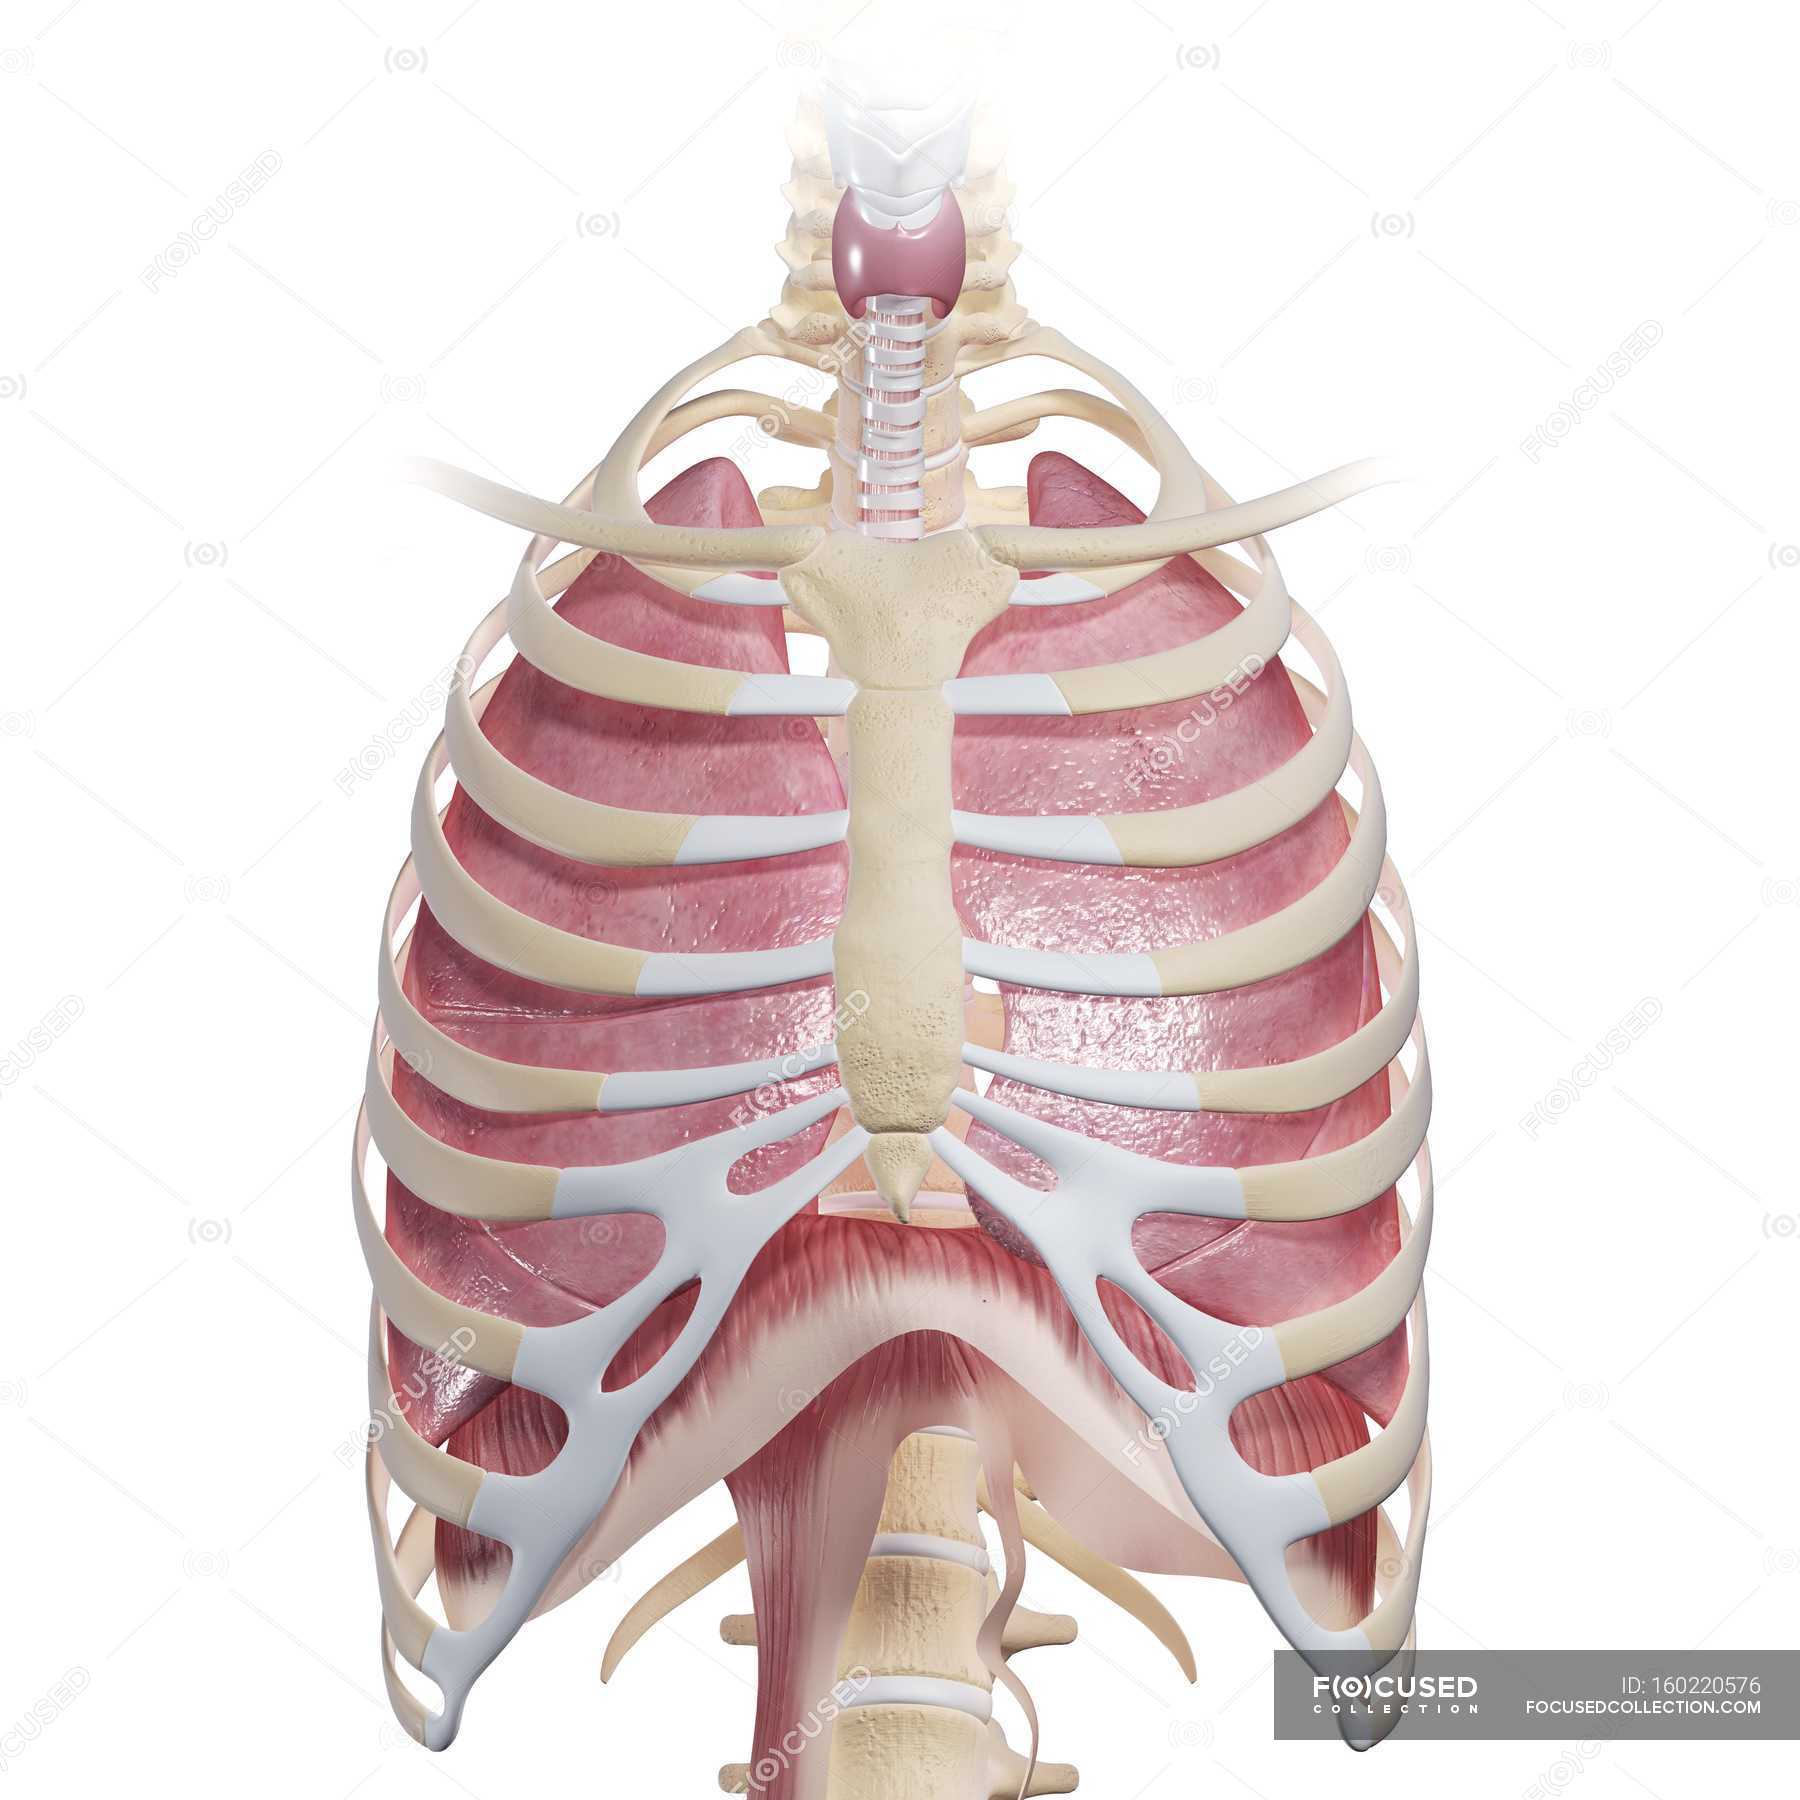 Human Chest Anatomy Stock Photo 160220576